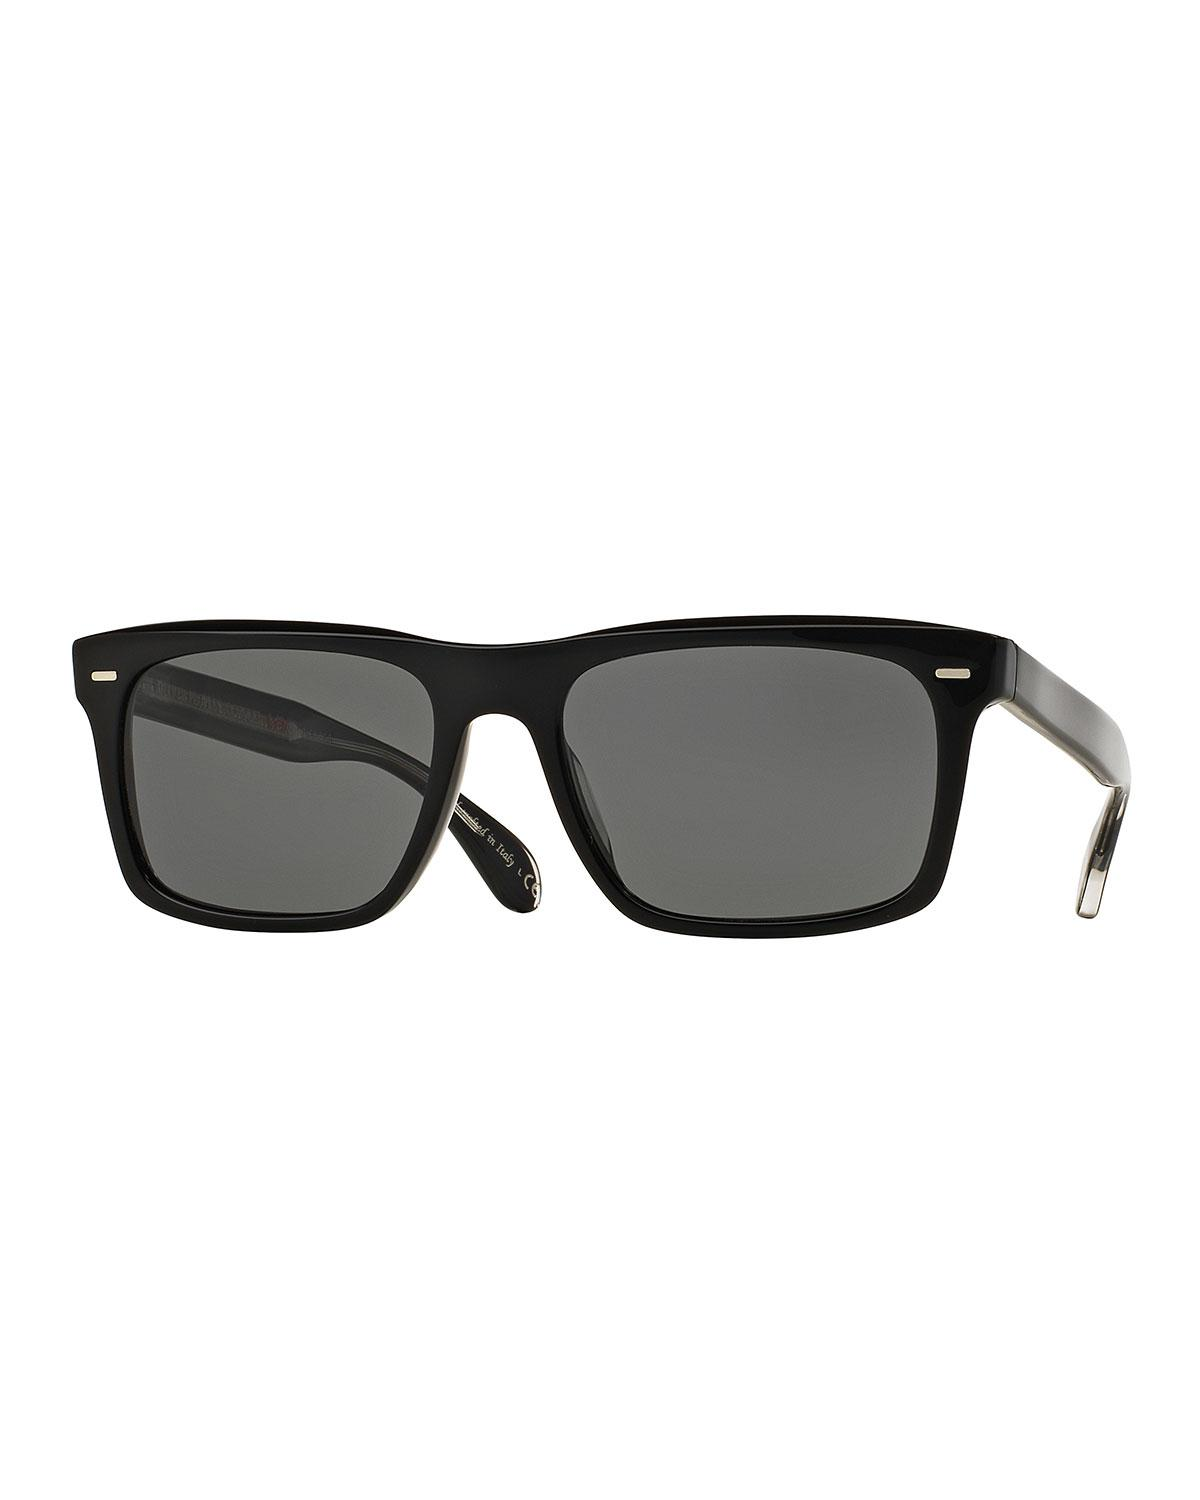 5f11d3da63 Lyst - Oliver Peoples Brodsky 55 Vfx+ Polarized Sunglasses Black in ...